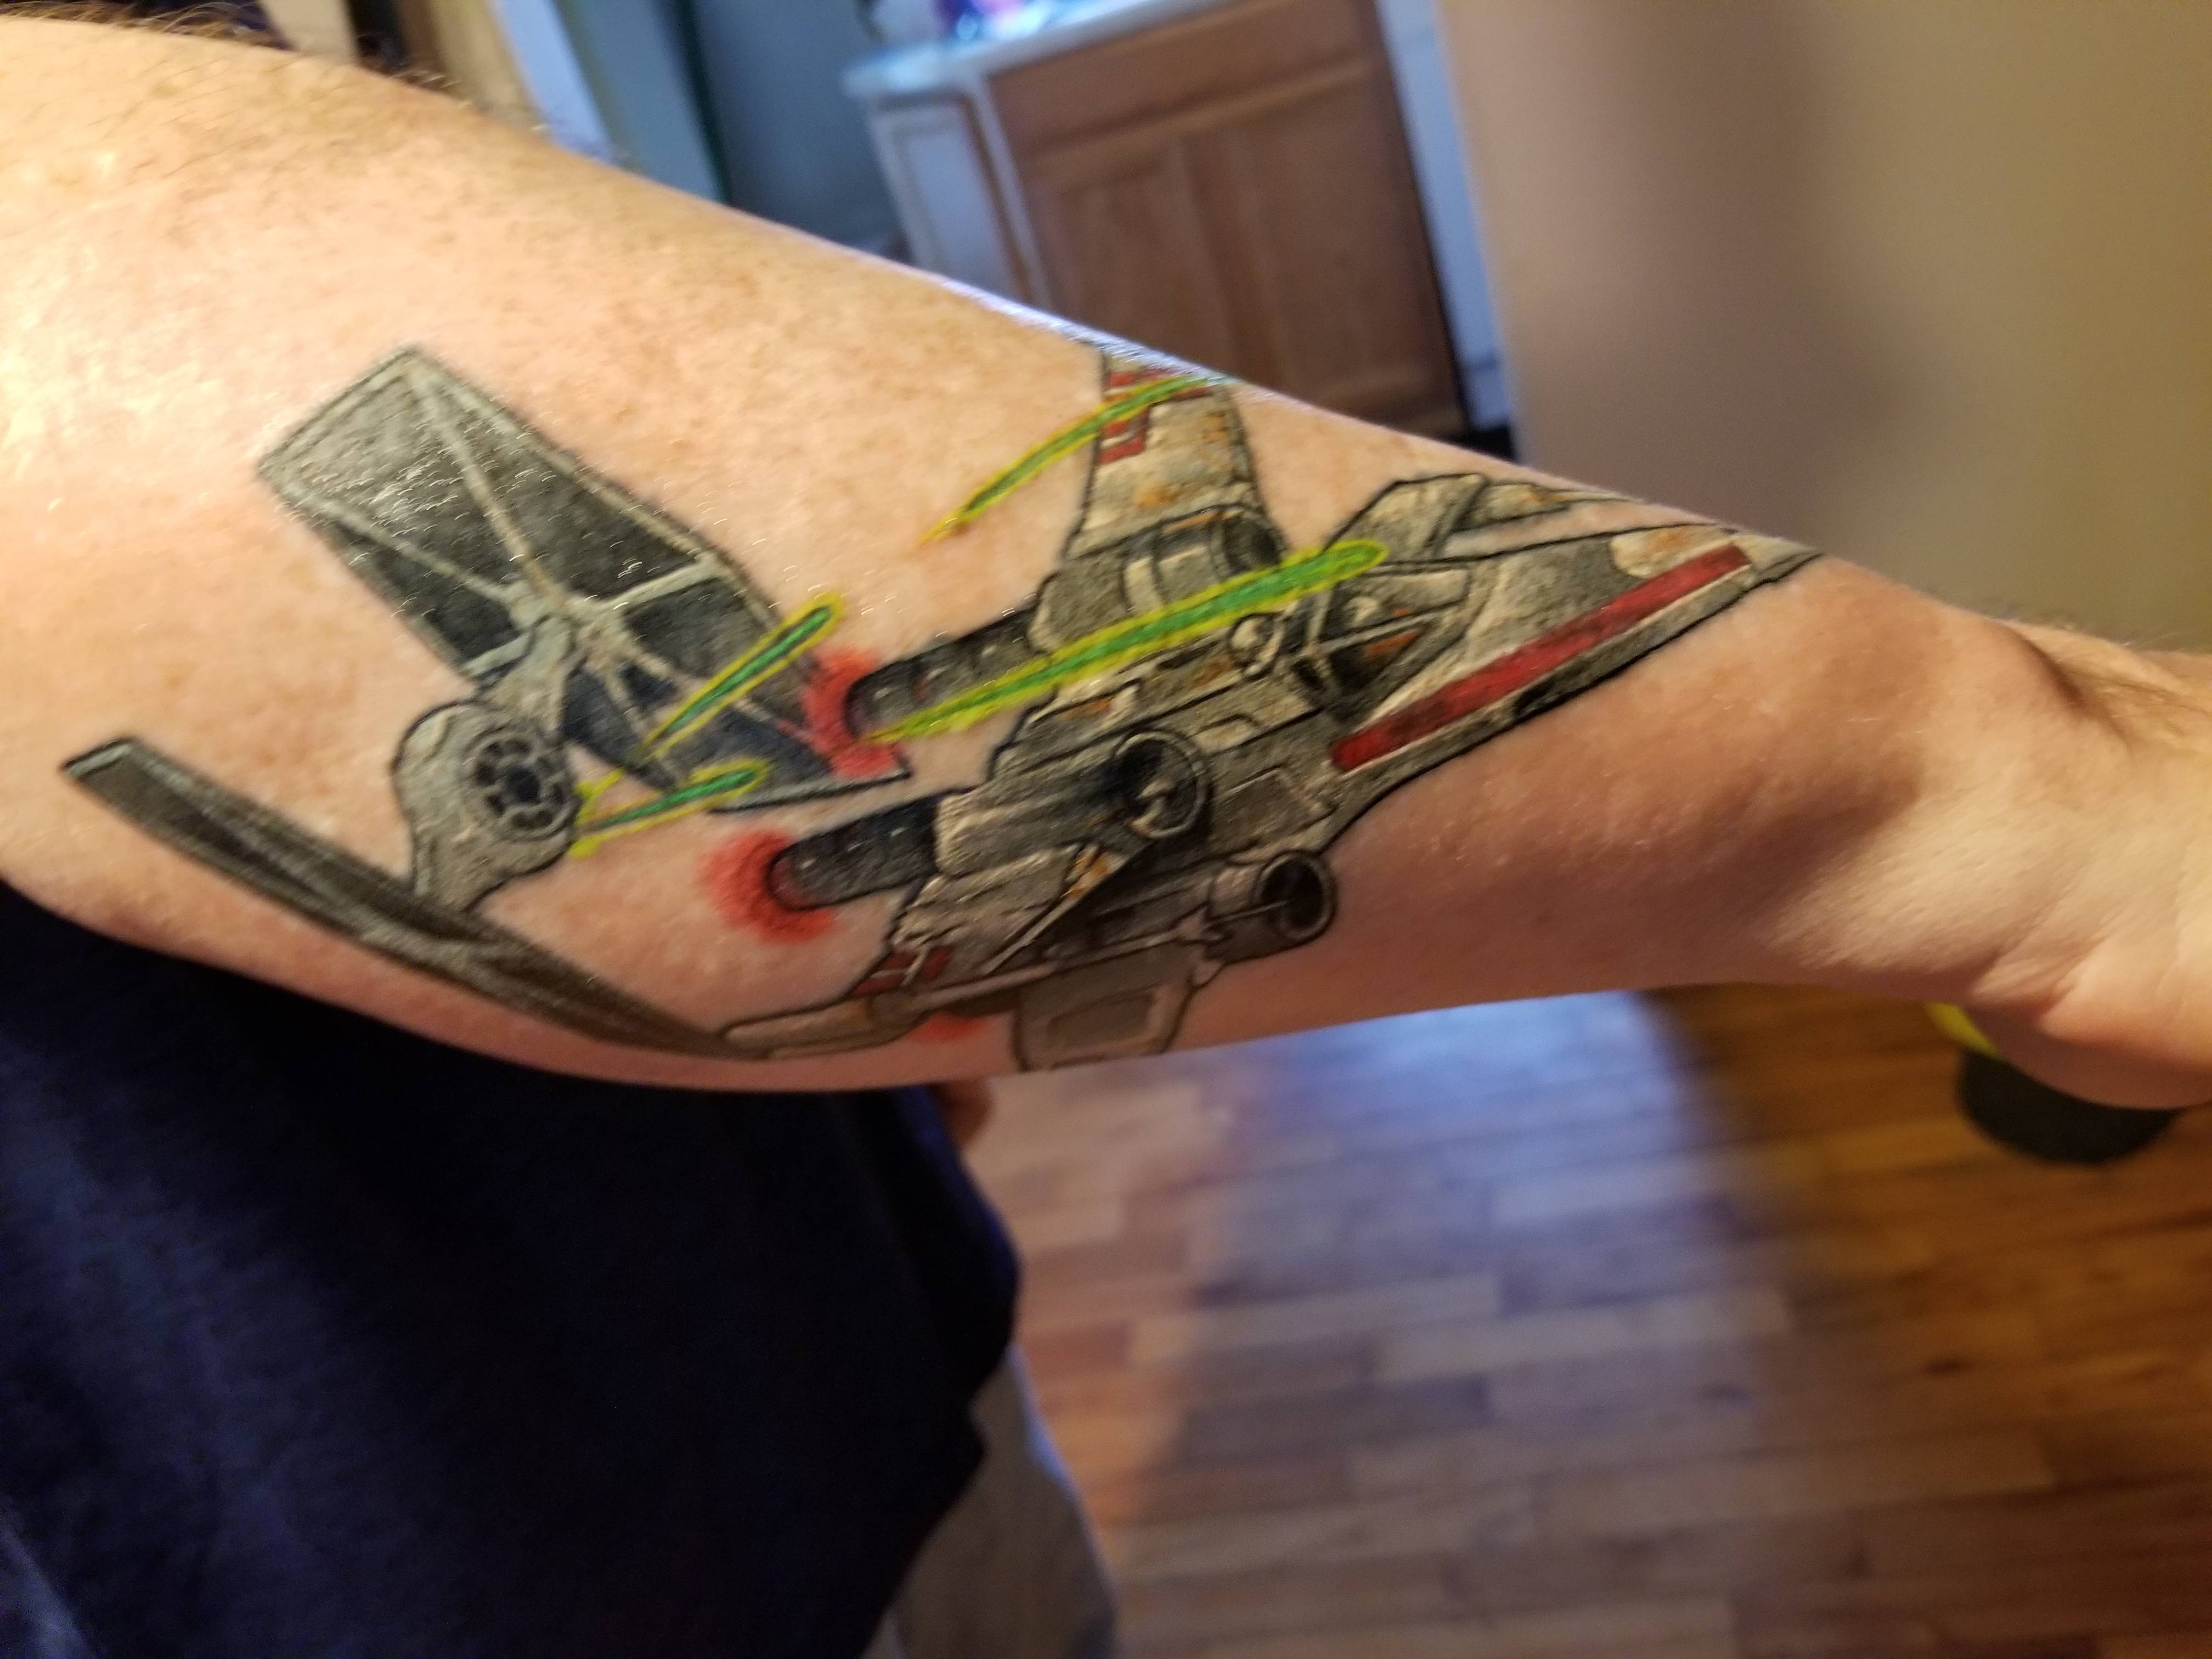 New tattoo. Will eventually be a full sleeve dedicated to Star Wars.